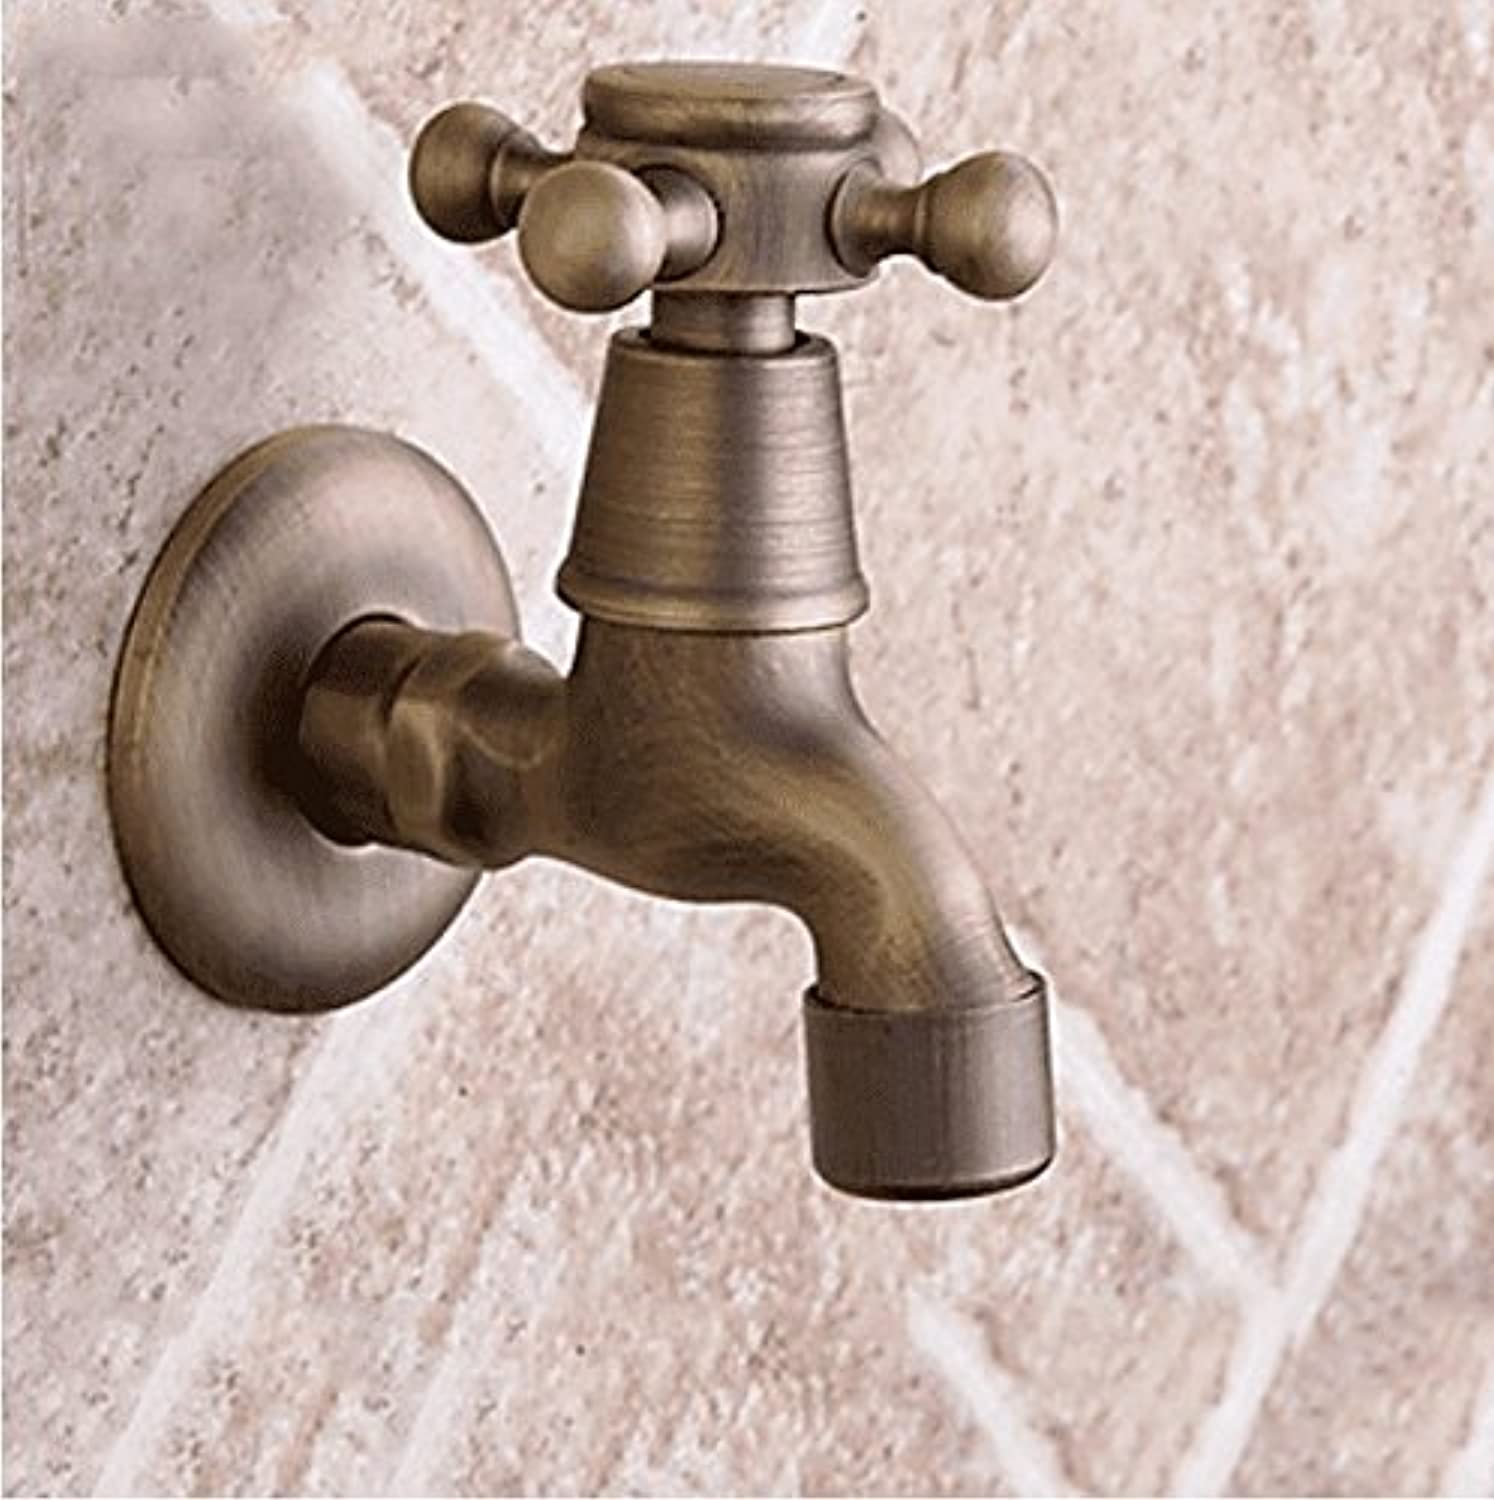 Lpophy Bathroom Sink Mixer Taps Faucet Bath Waterfall Cold and Hot Water Tap for Washroom Bathroom and Kitchen Antique Wall-Mounted Ceramic Valve Drawing